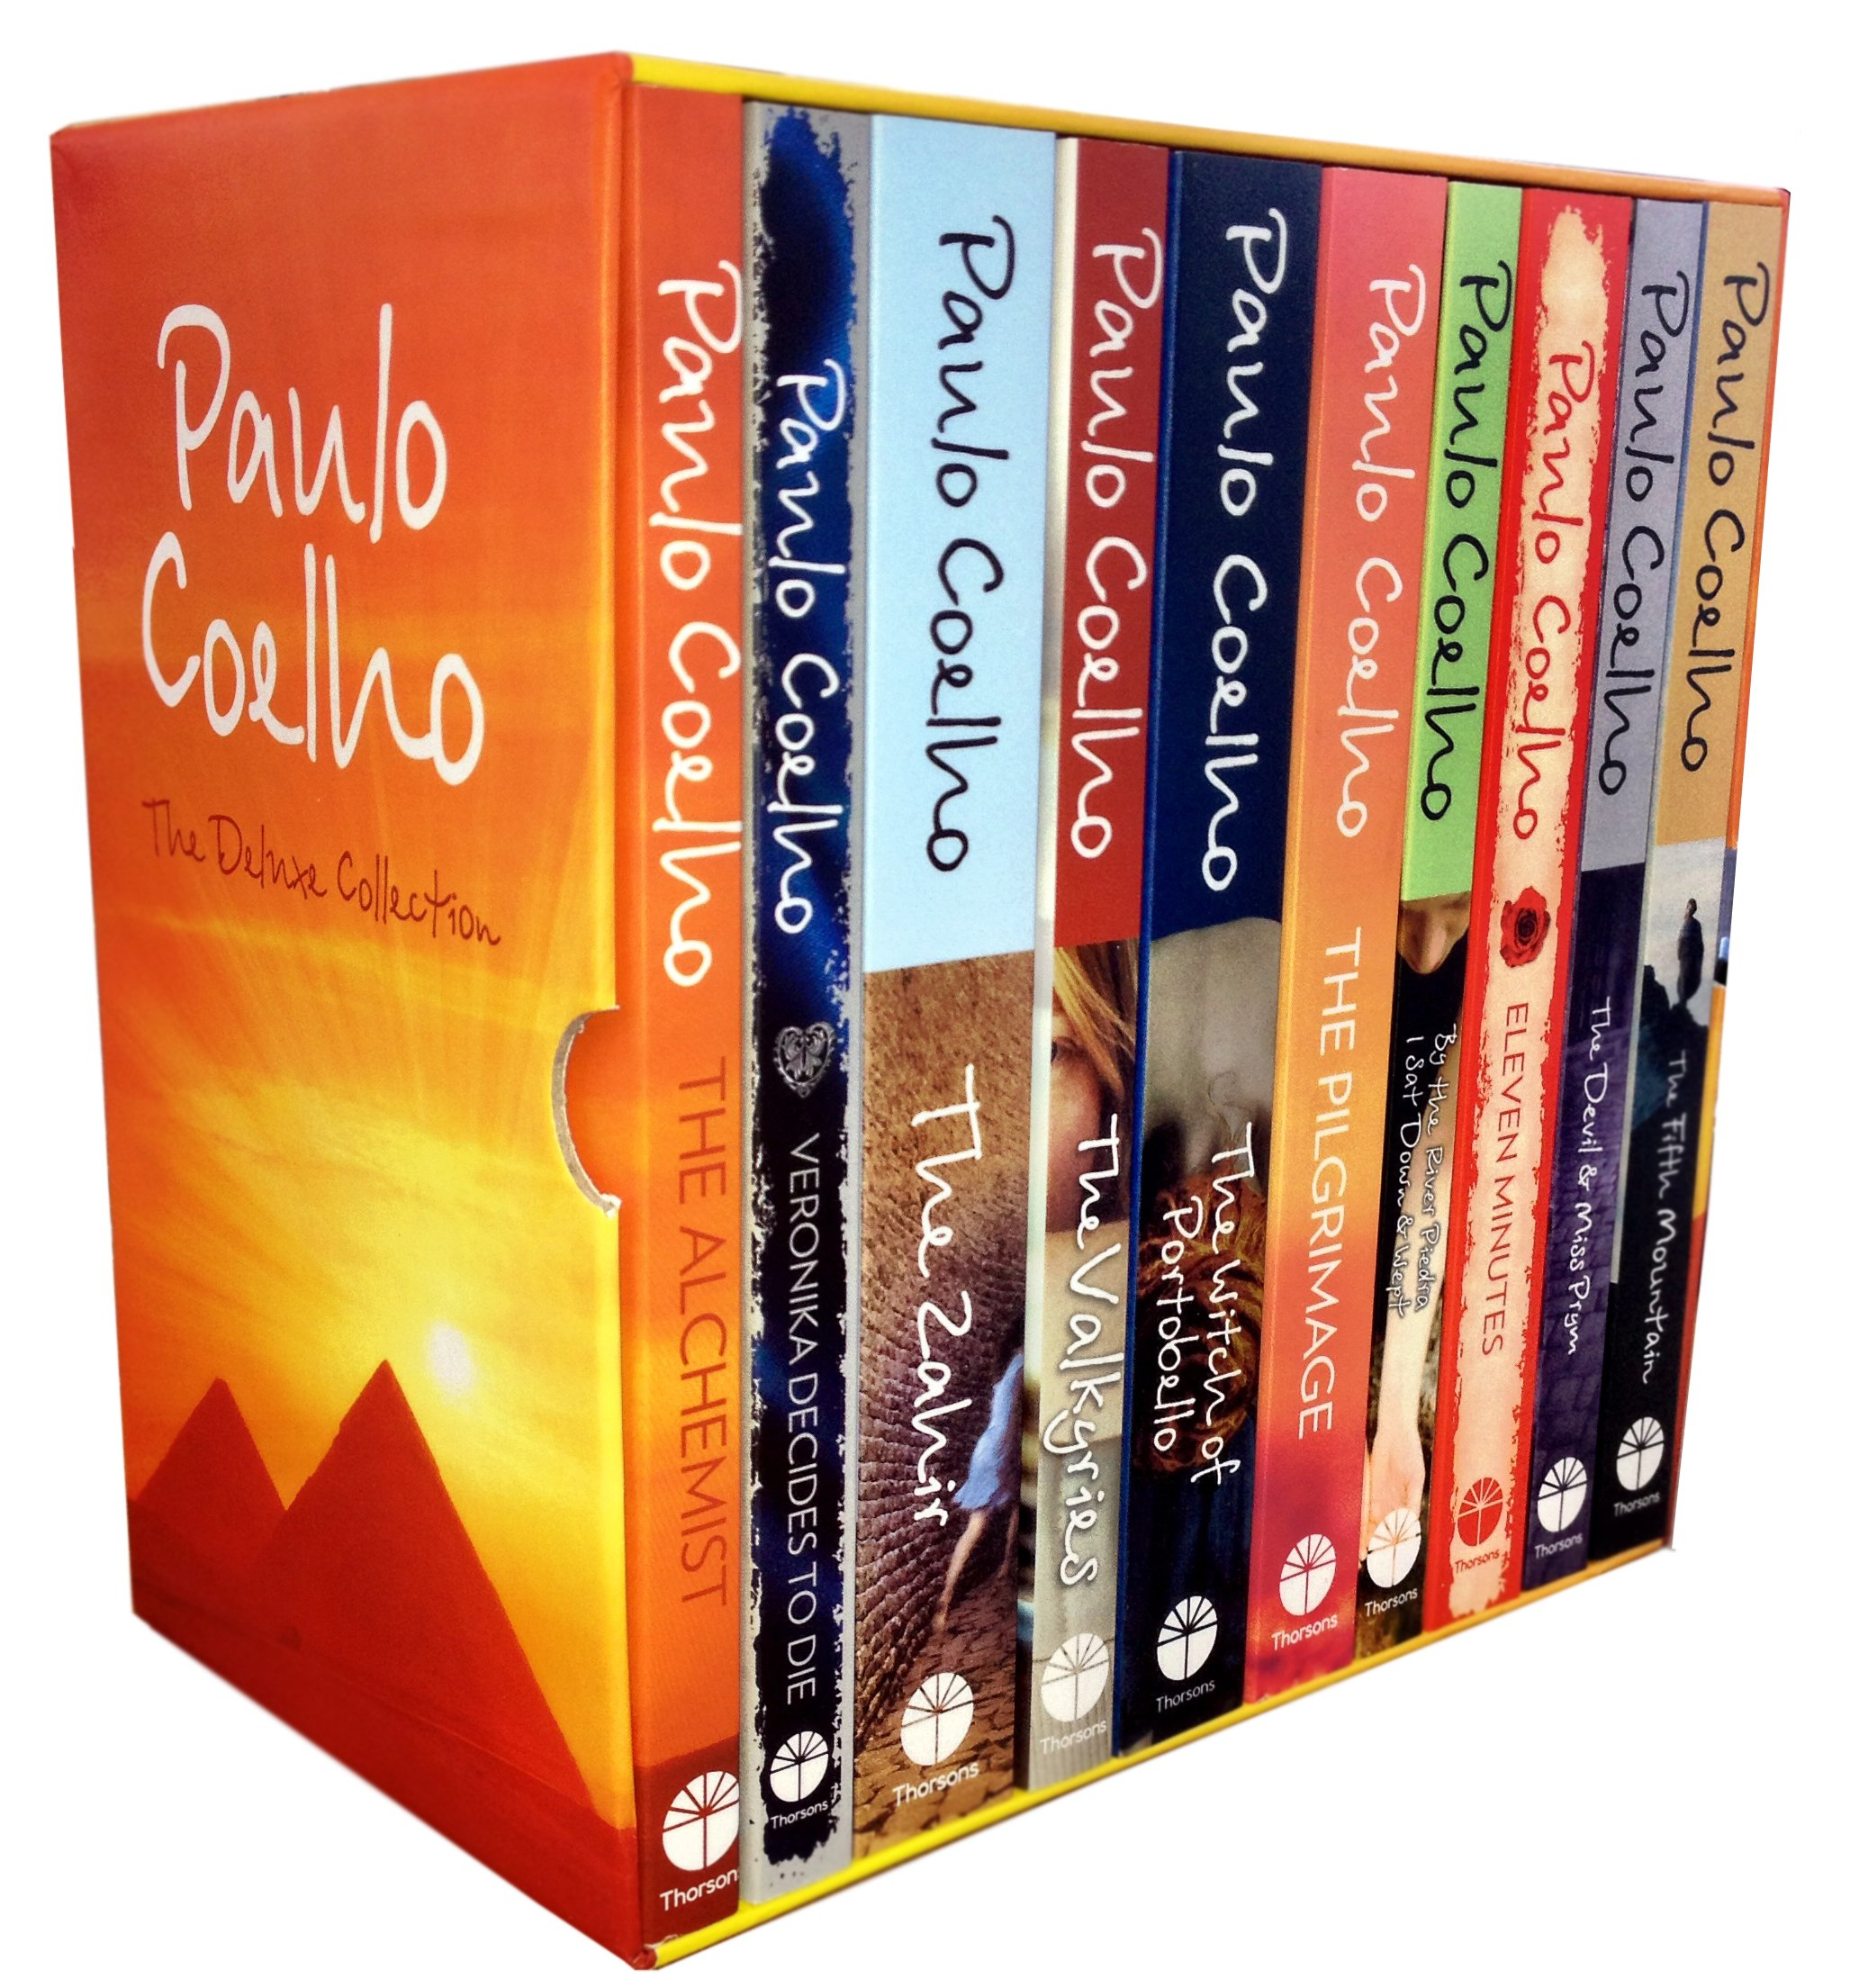 Paulo Coelho: The Deluxe Collection (10 volume boxed set)